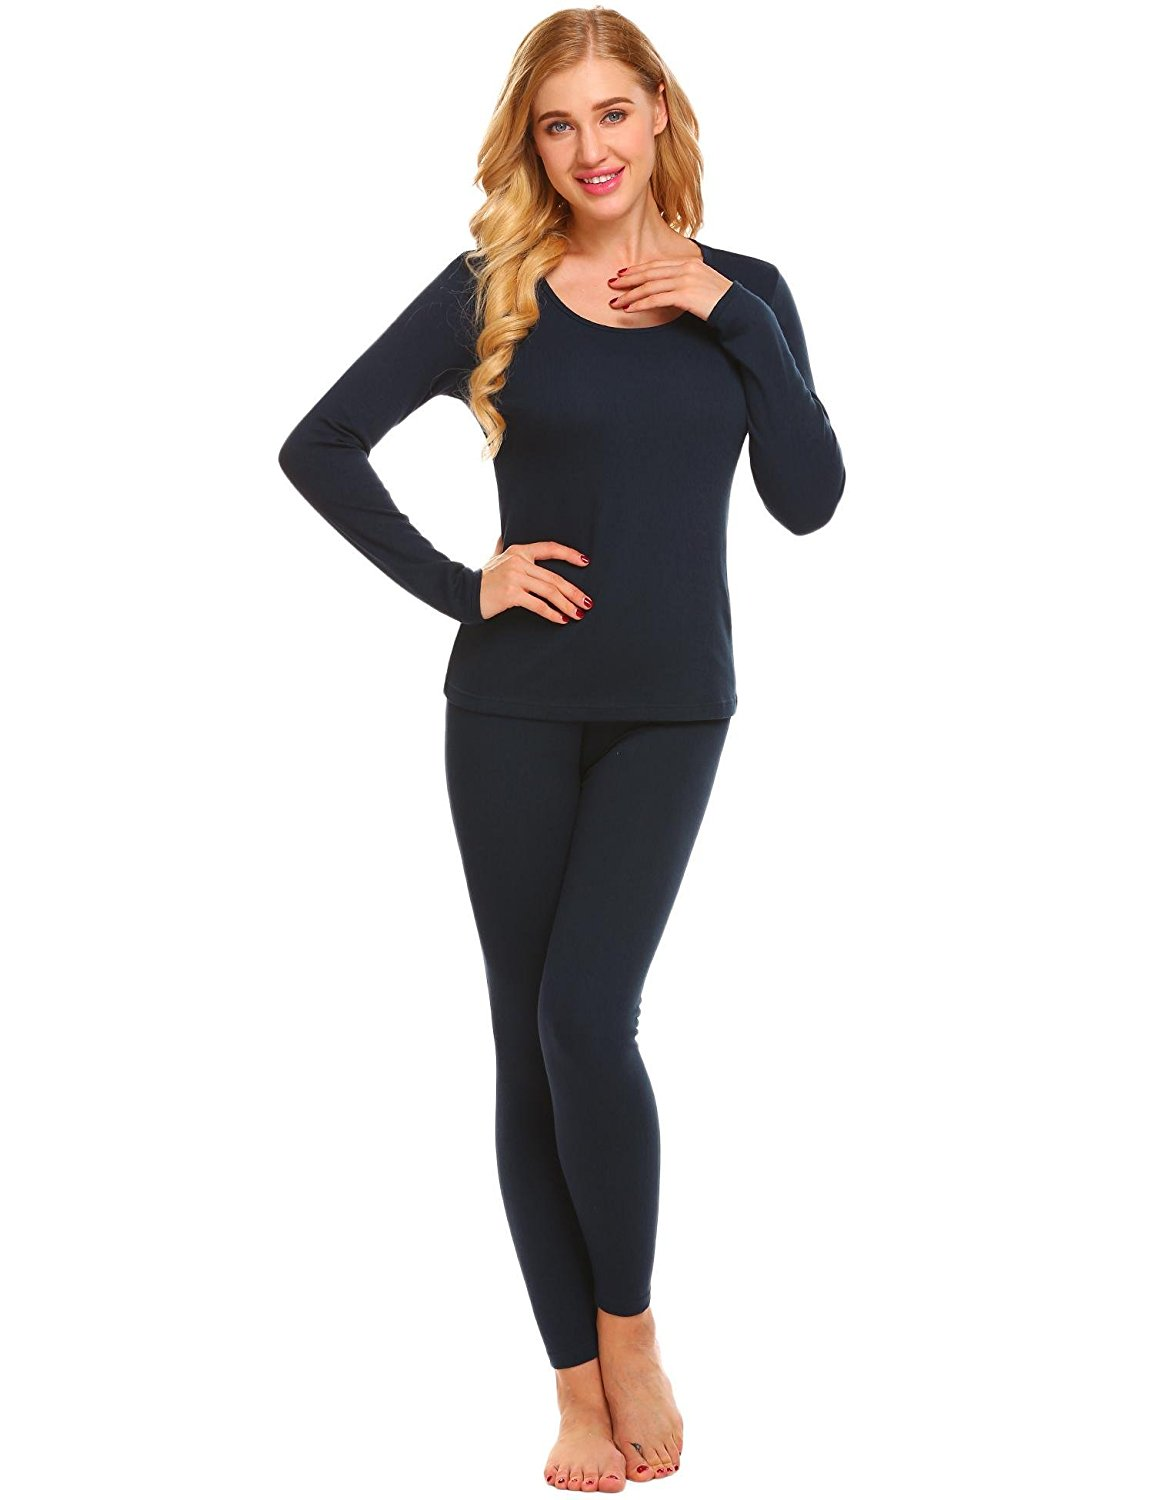 e50441bedf5f Get Quotations · Skylin Women Thermal Underwear Set O-Neck Long Sleeve Top  and Bottom Pajama Set S